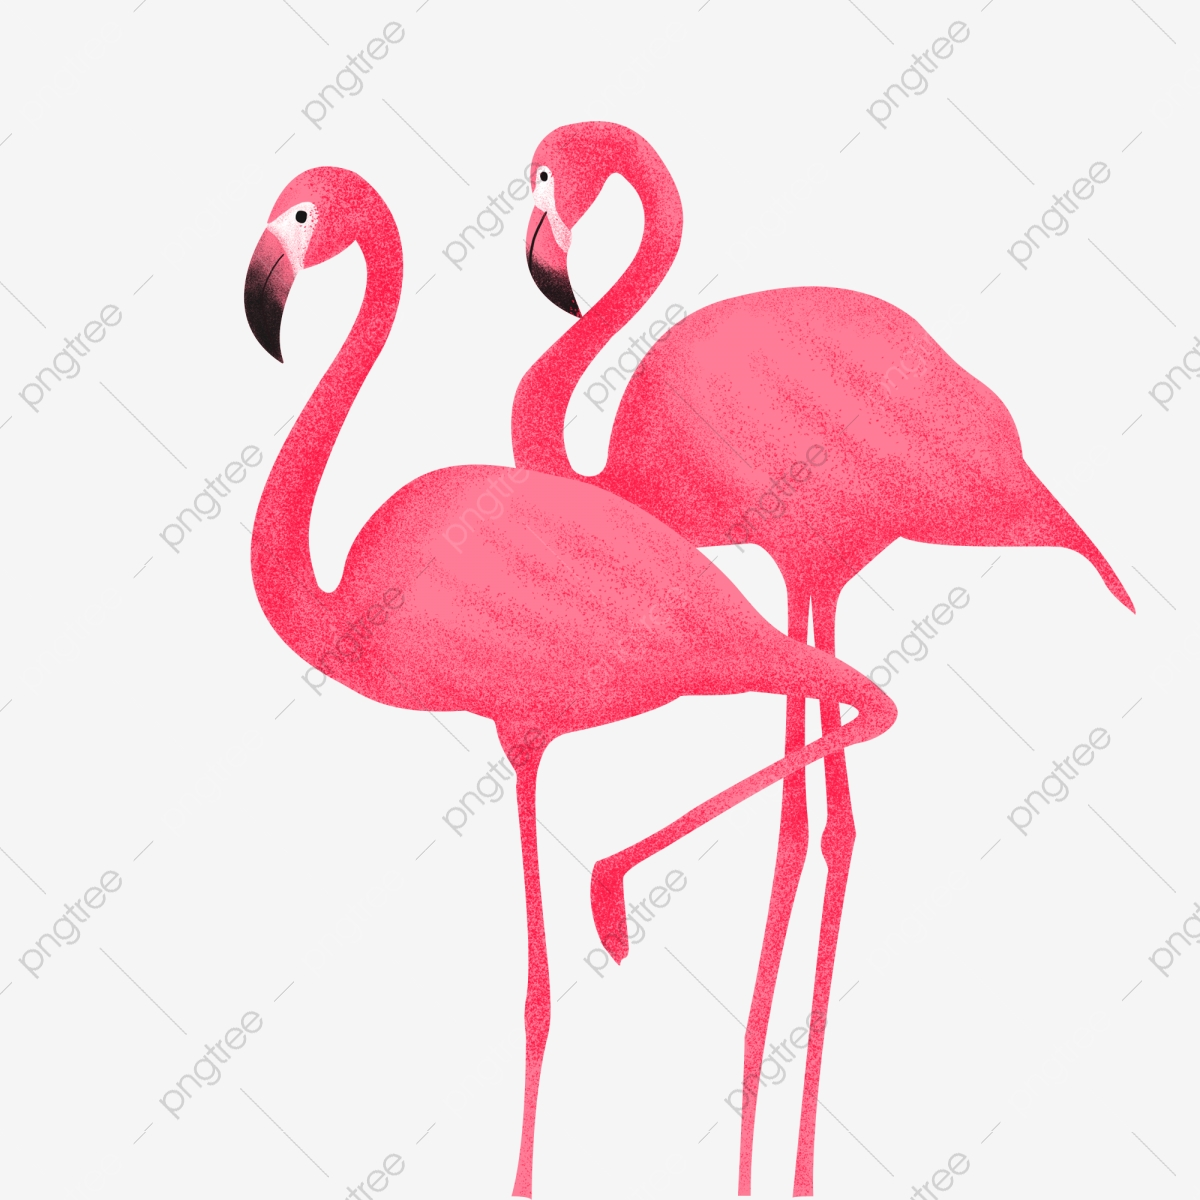 hight resolution of commercial use resource upgrade to premium plan and get license authorization upgradenow cartoon flamingo cartoon clipart